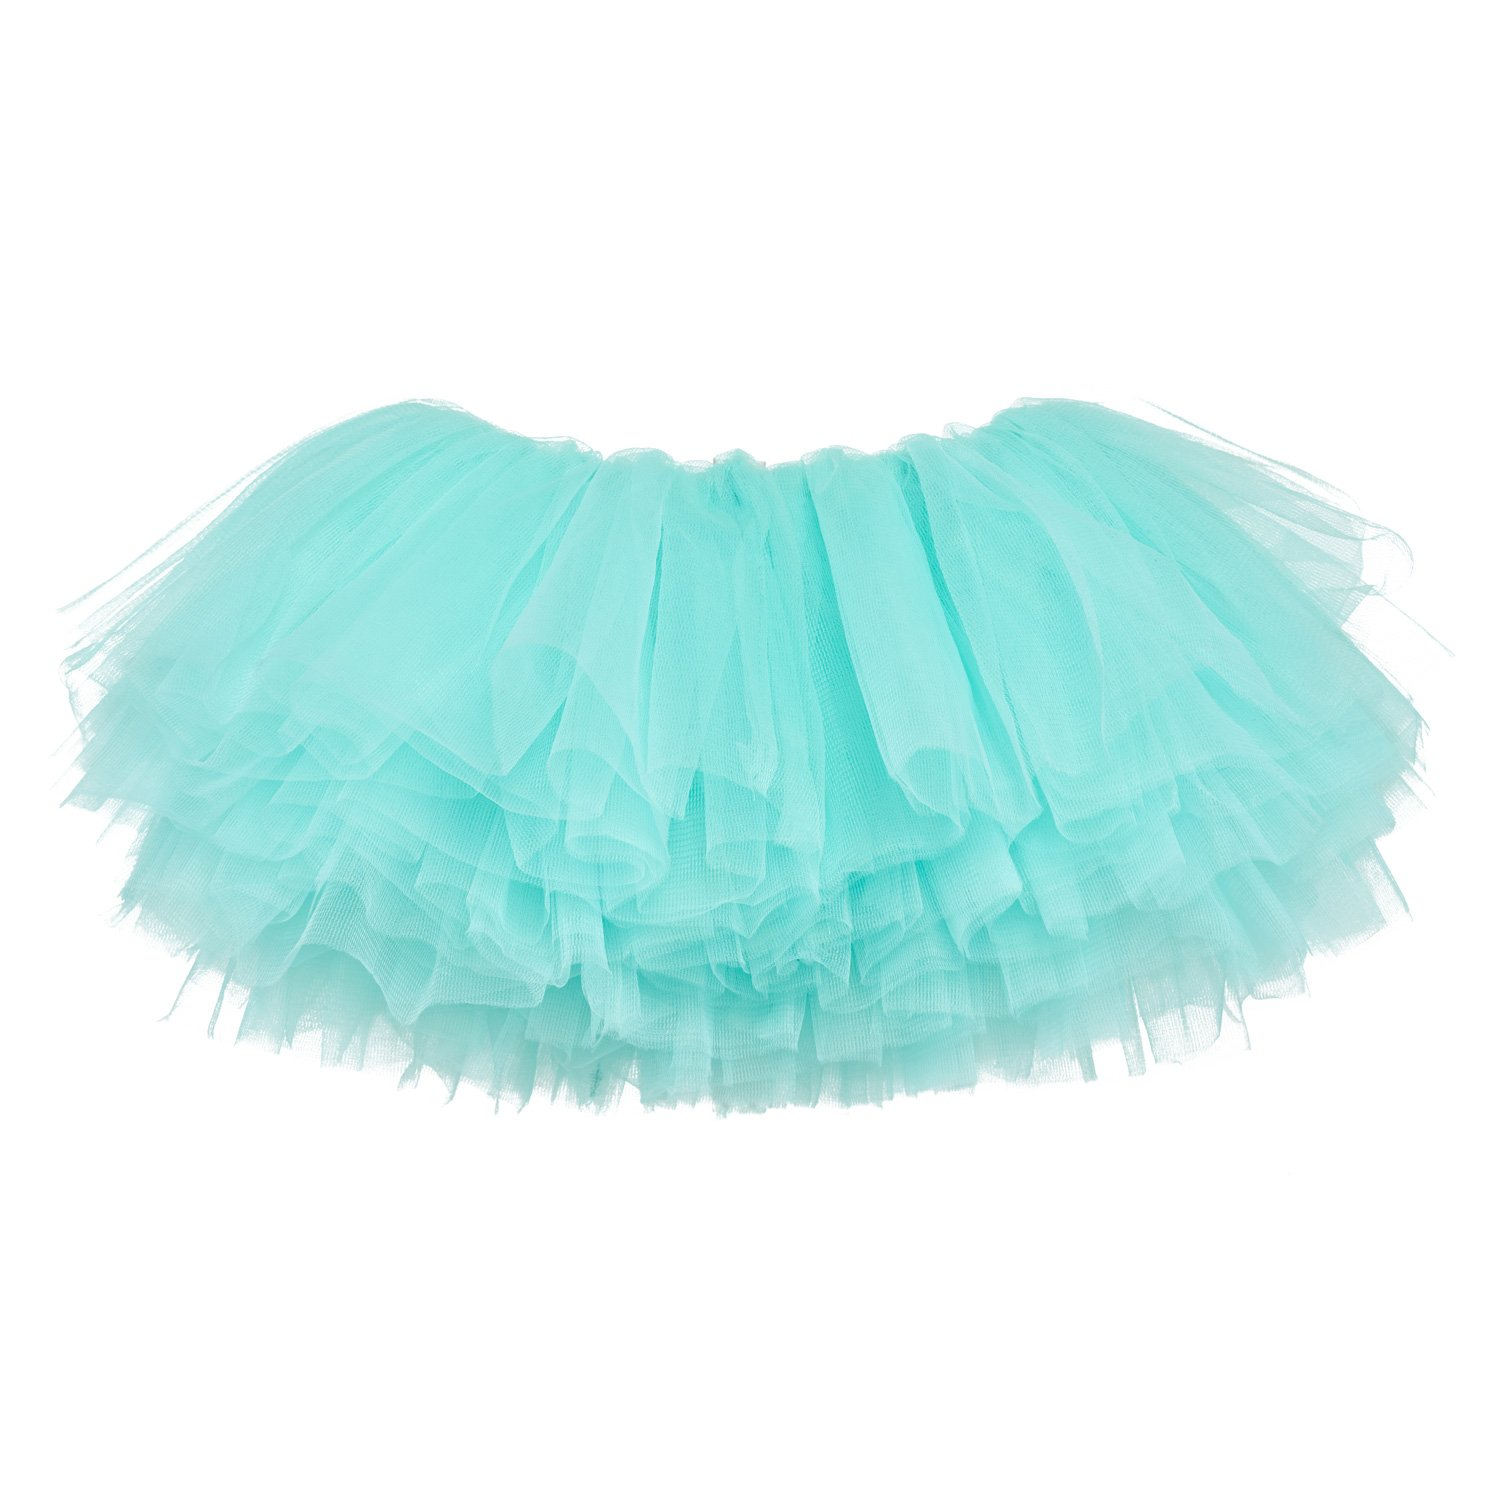 My Lello Big Girls 10-Layer Short Ballet Tulle Tutu Skirt (4T-10yr) -Aqua by My Lello